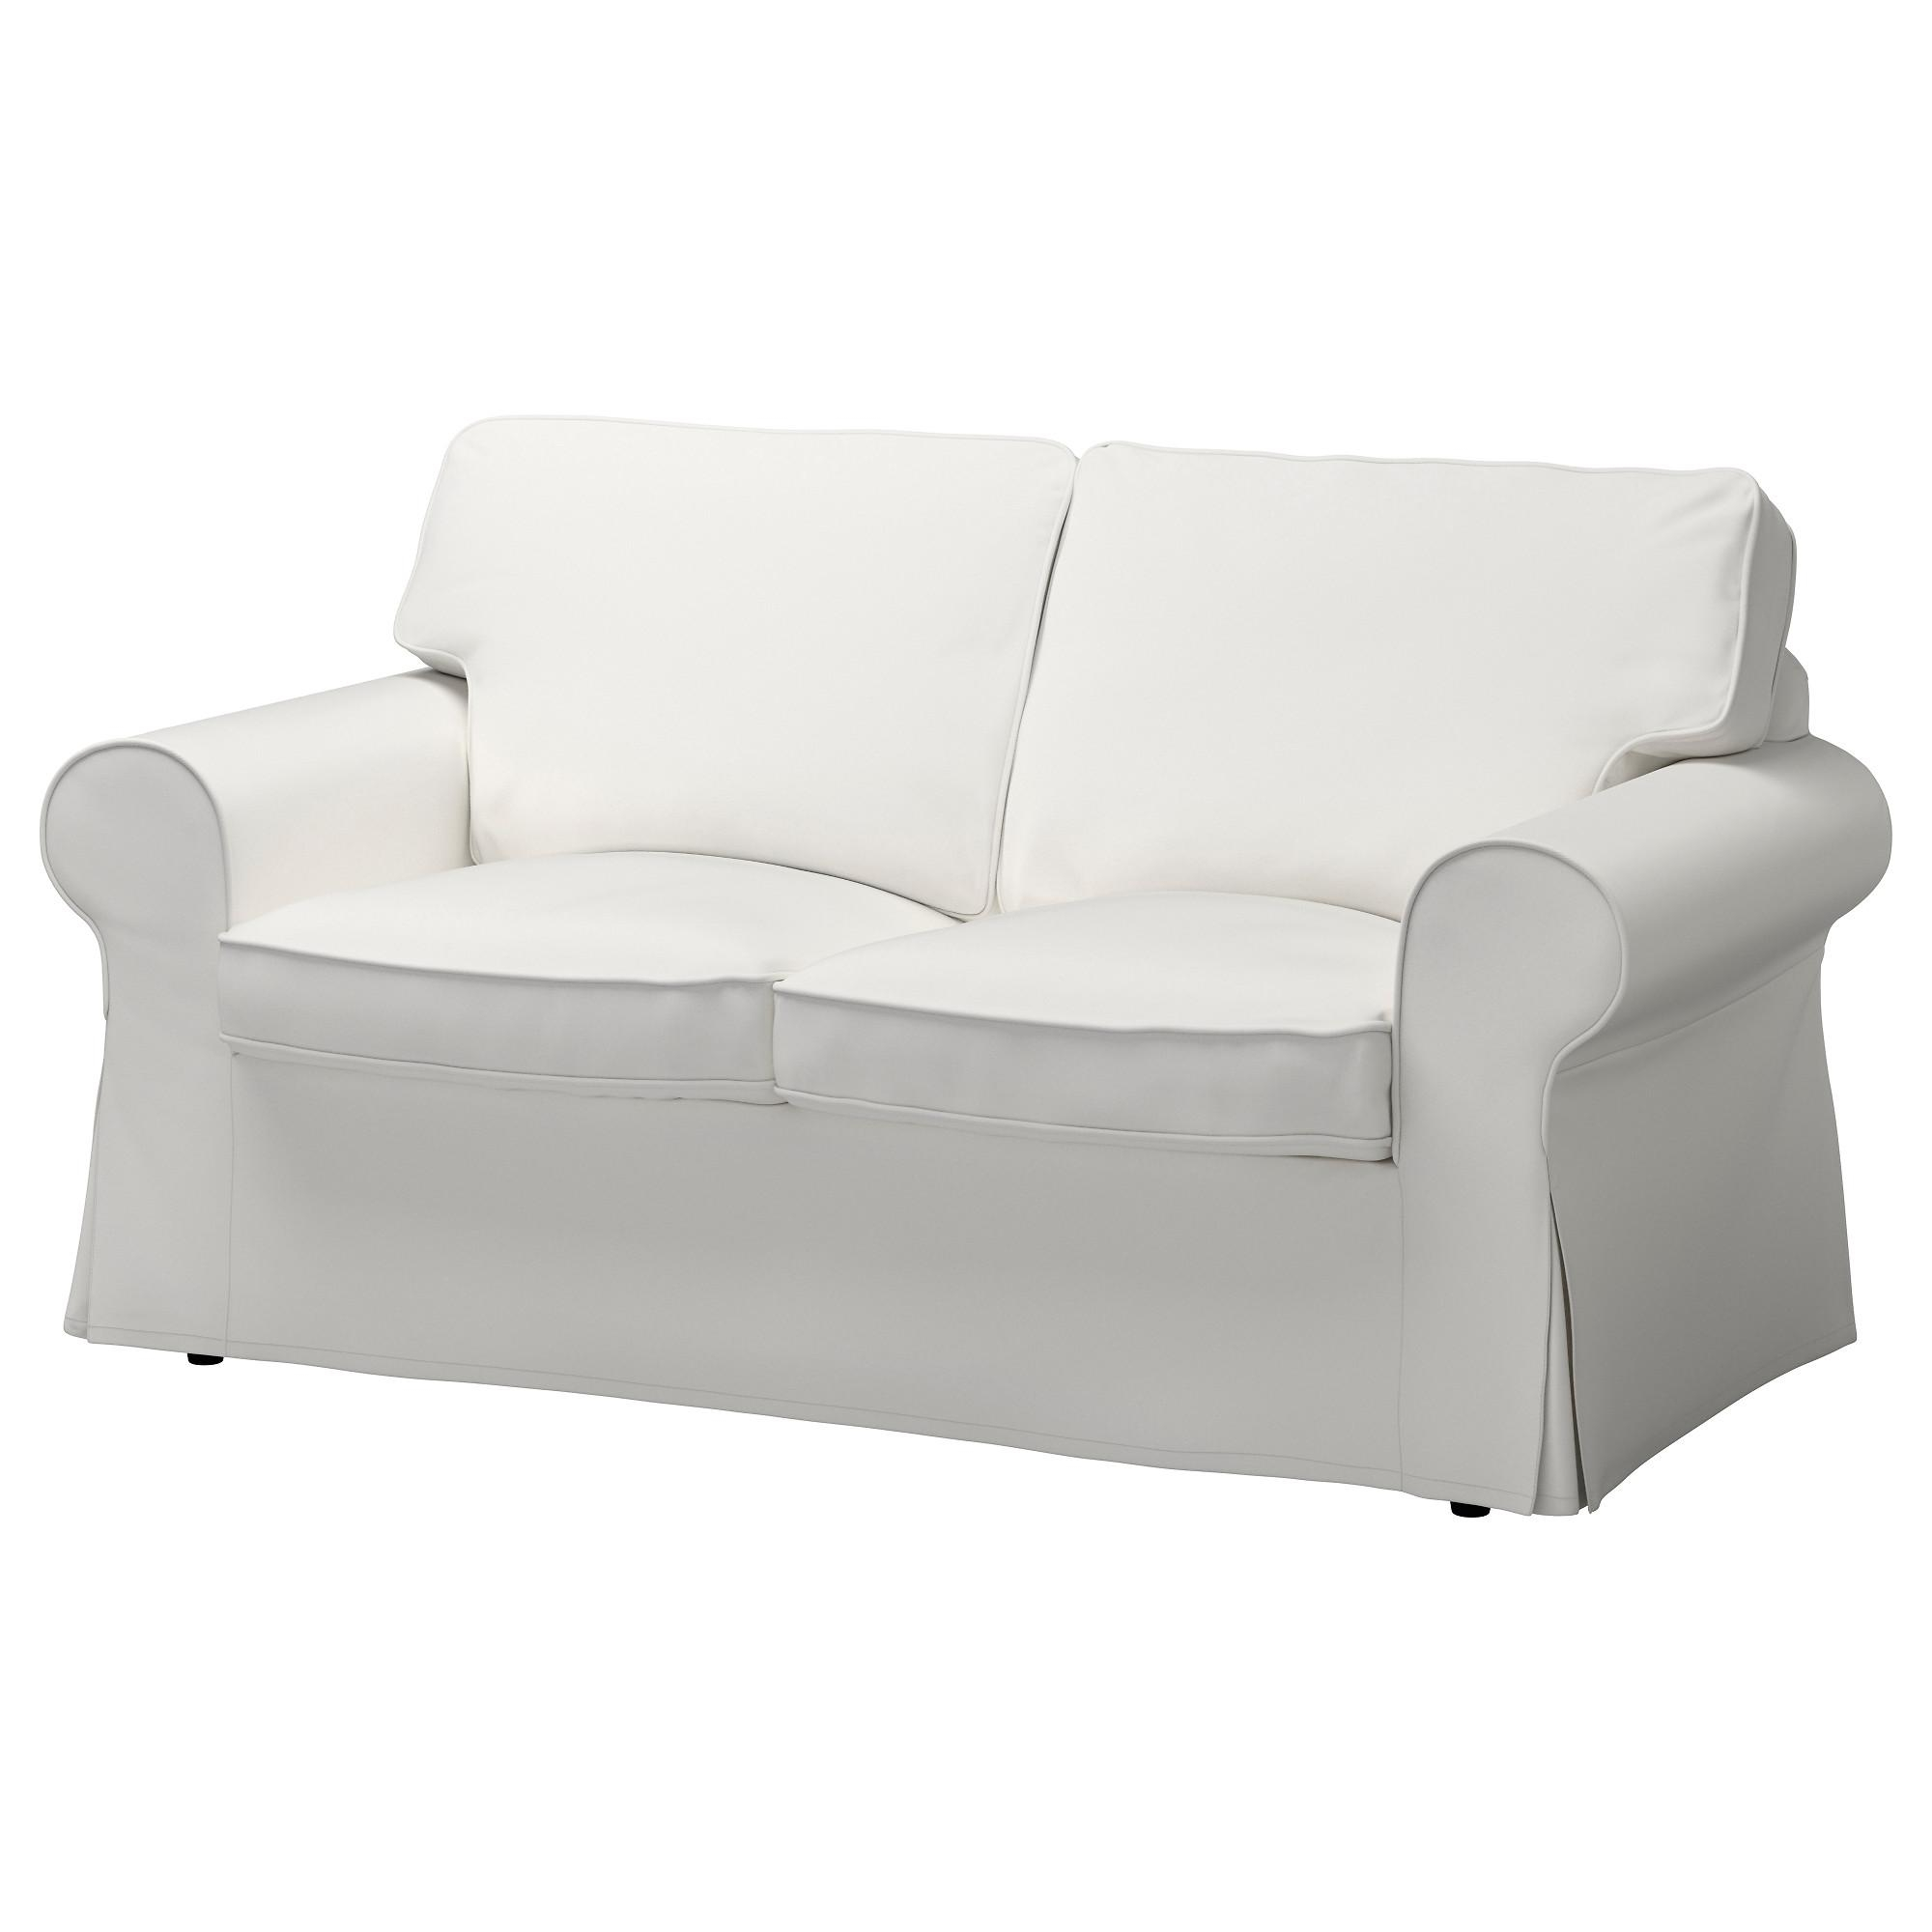 Fabric Sofas – Modern & Contemporary – Ikea With Regard To White Modern Sofas (Image 6 of 20)